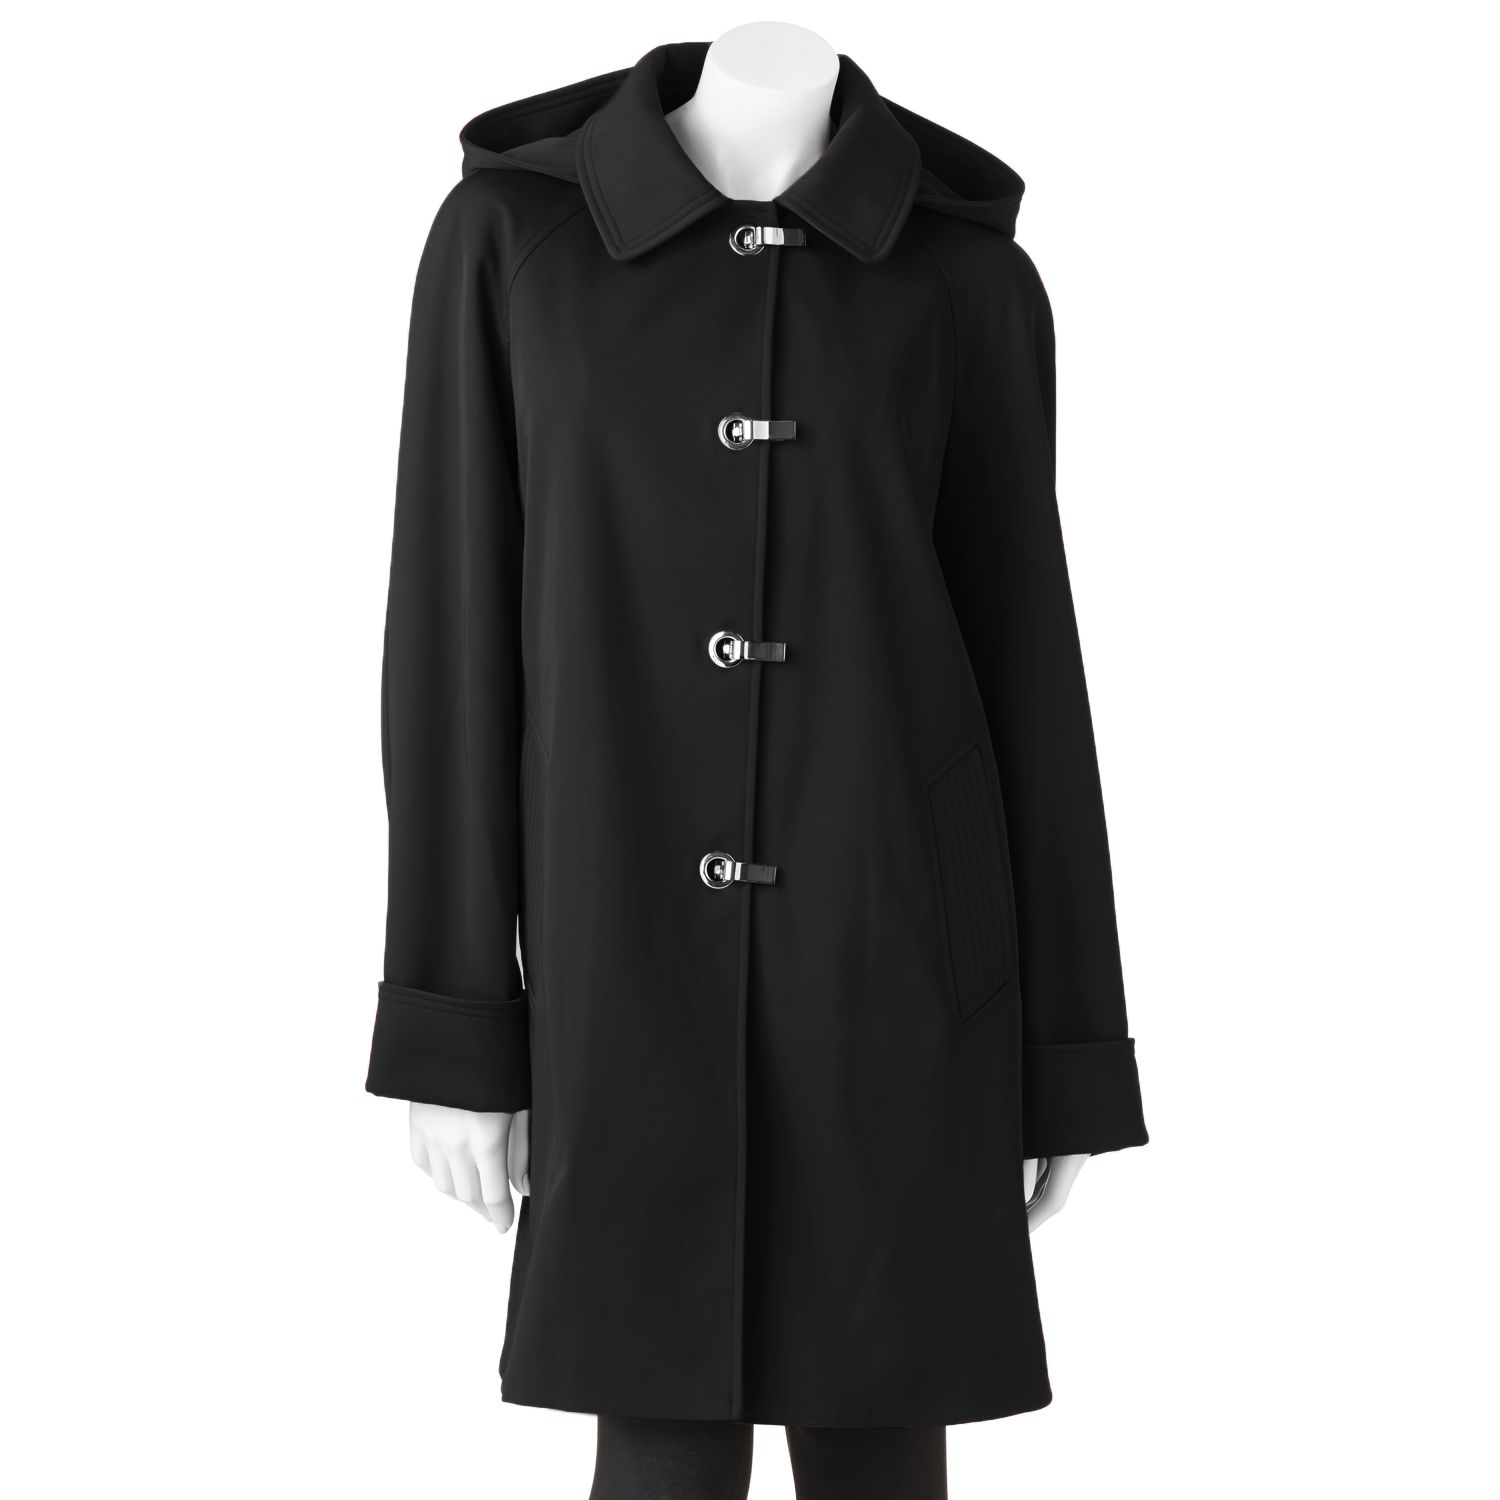 Towne by London Fog Hooded Raincoat